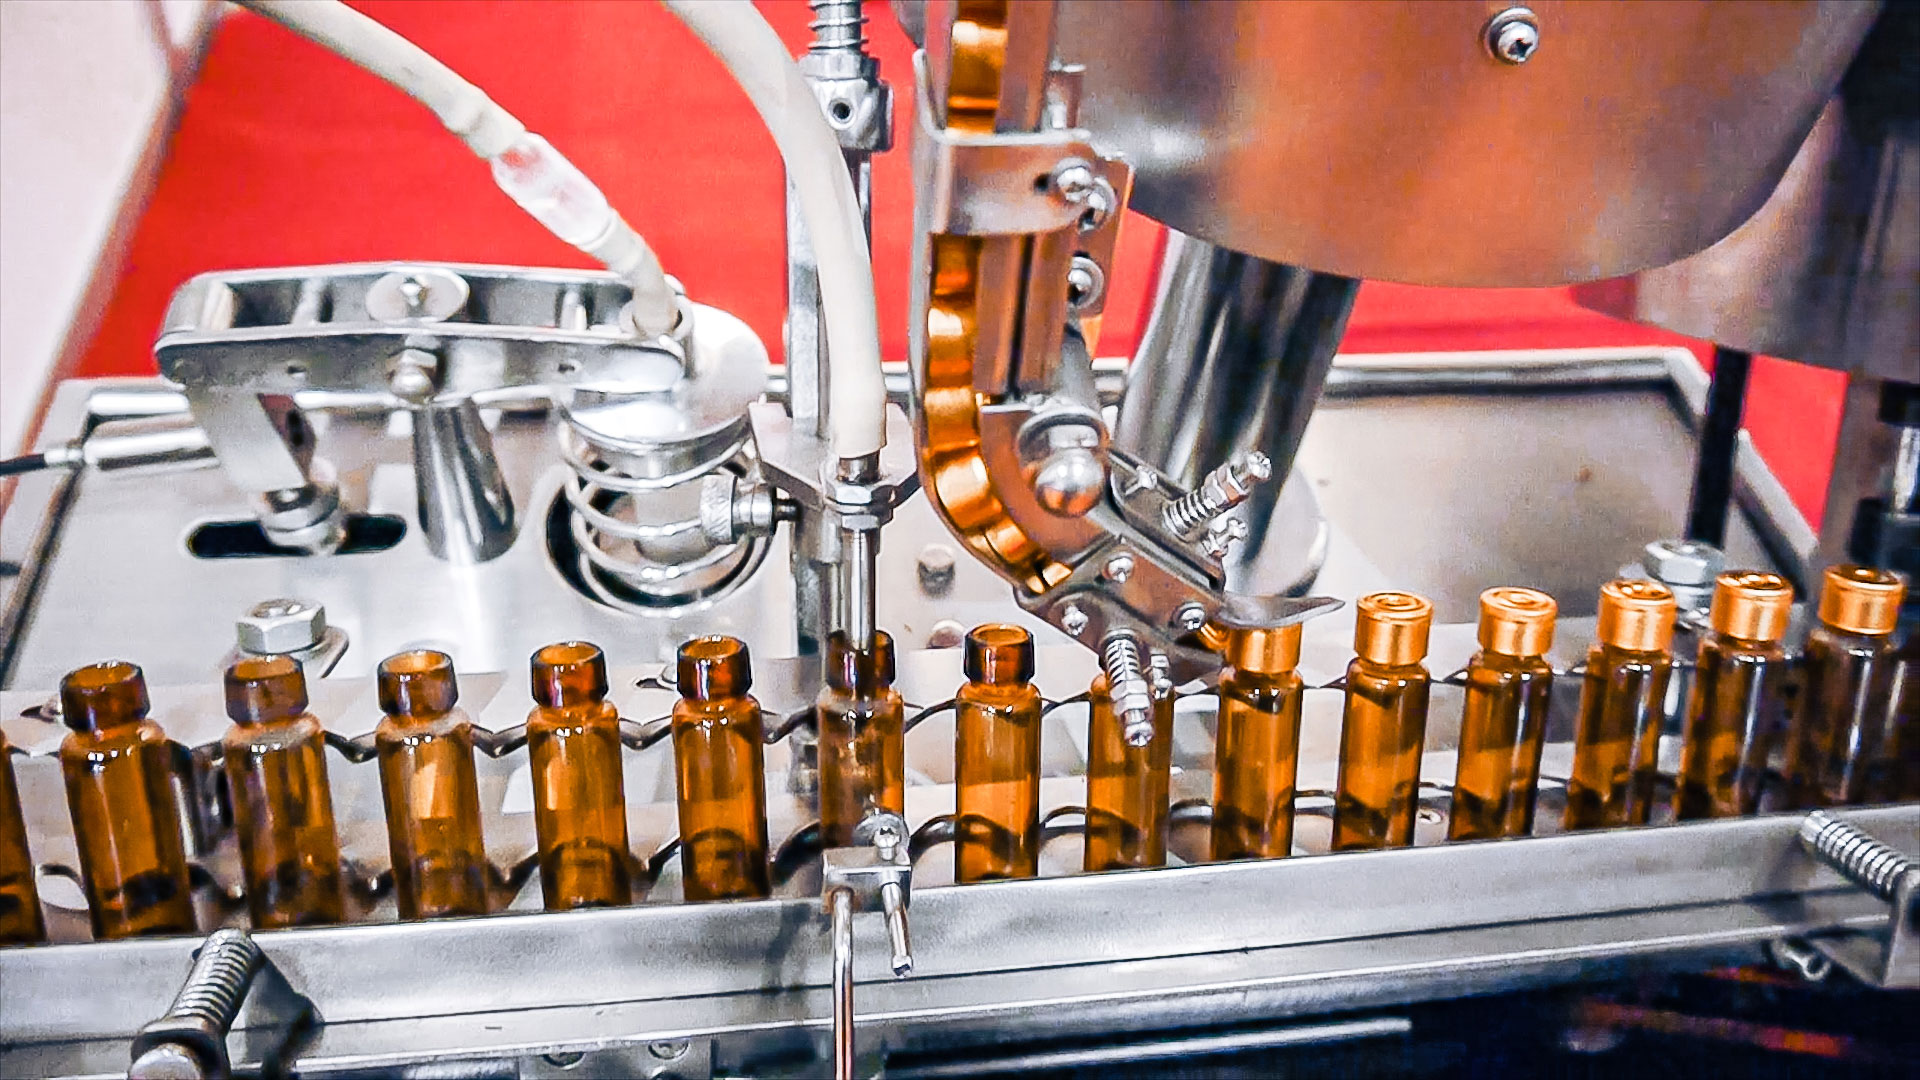 Automatic equipment for filling and capping penicillin bottles